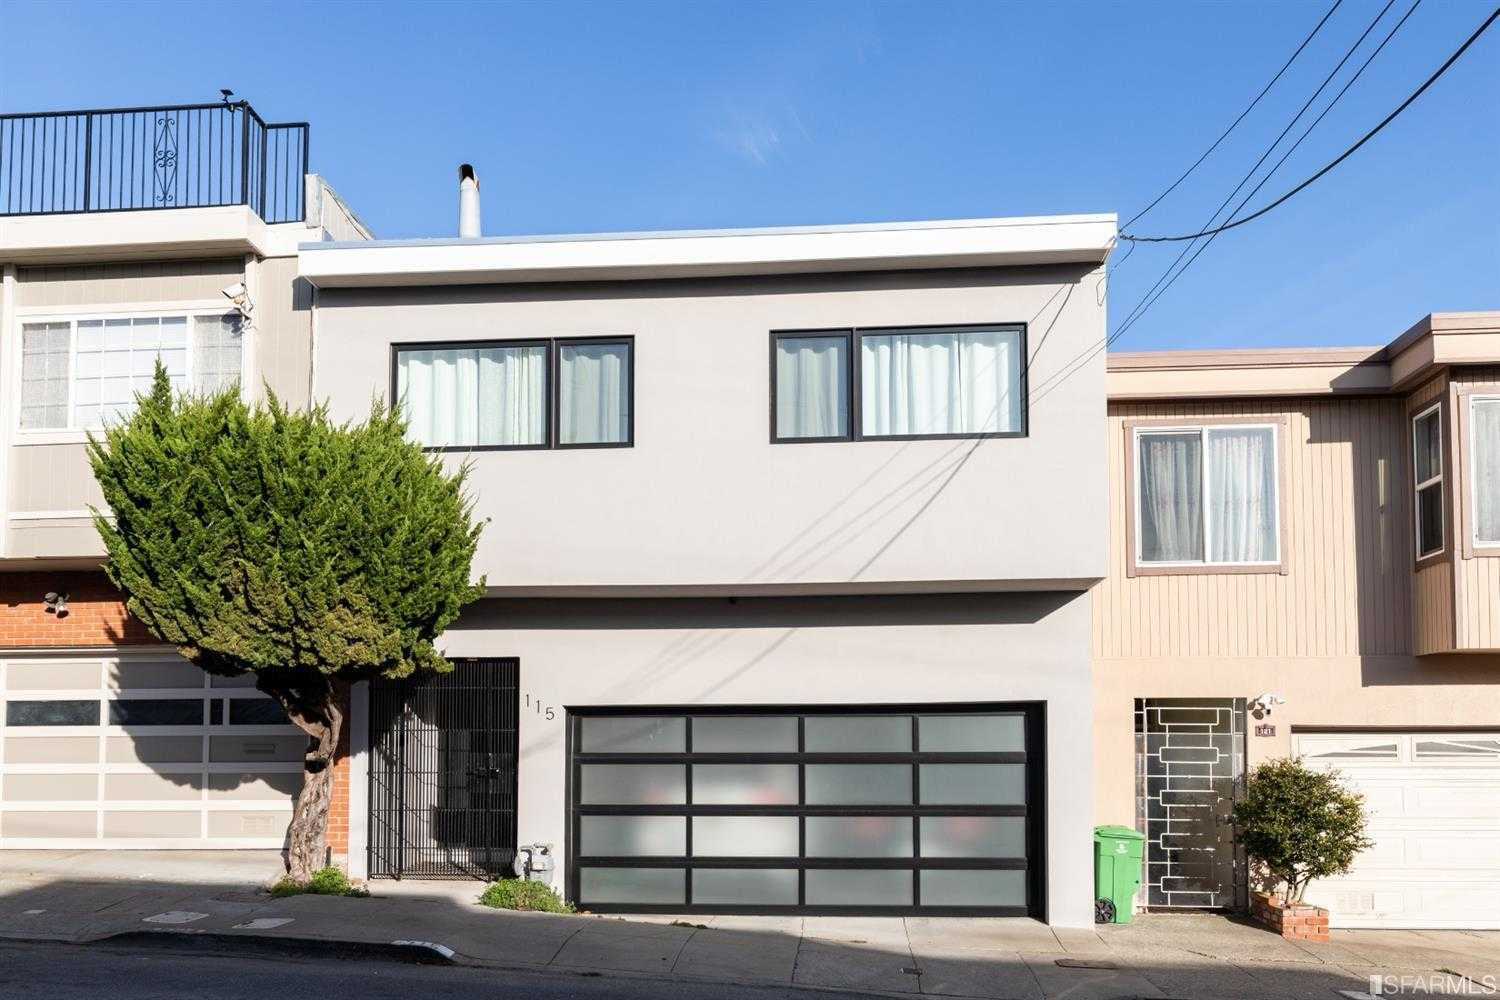 115 Colby St San Francisco, CA 94134